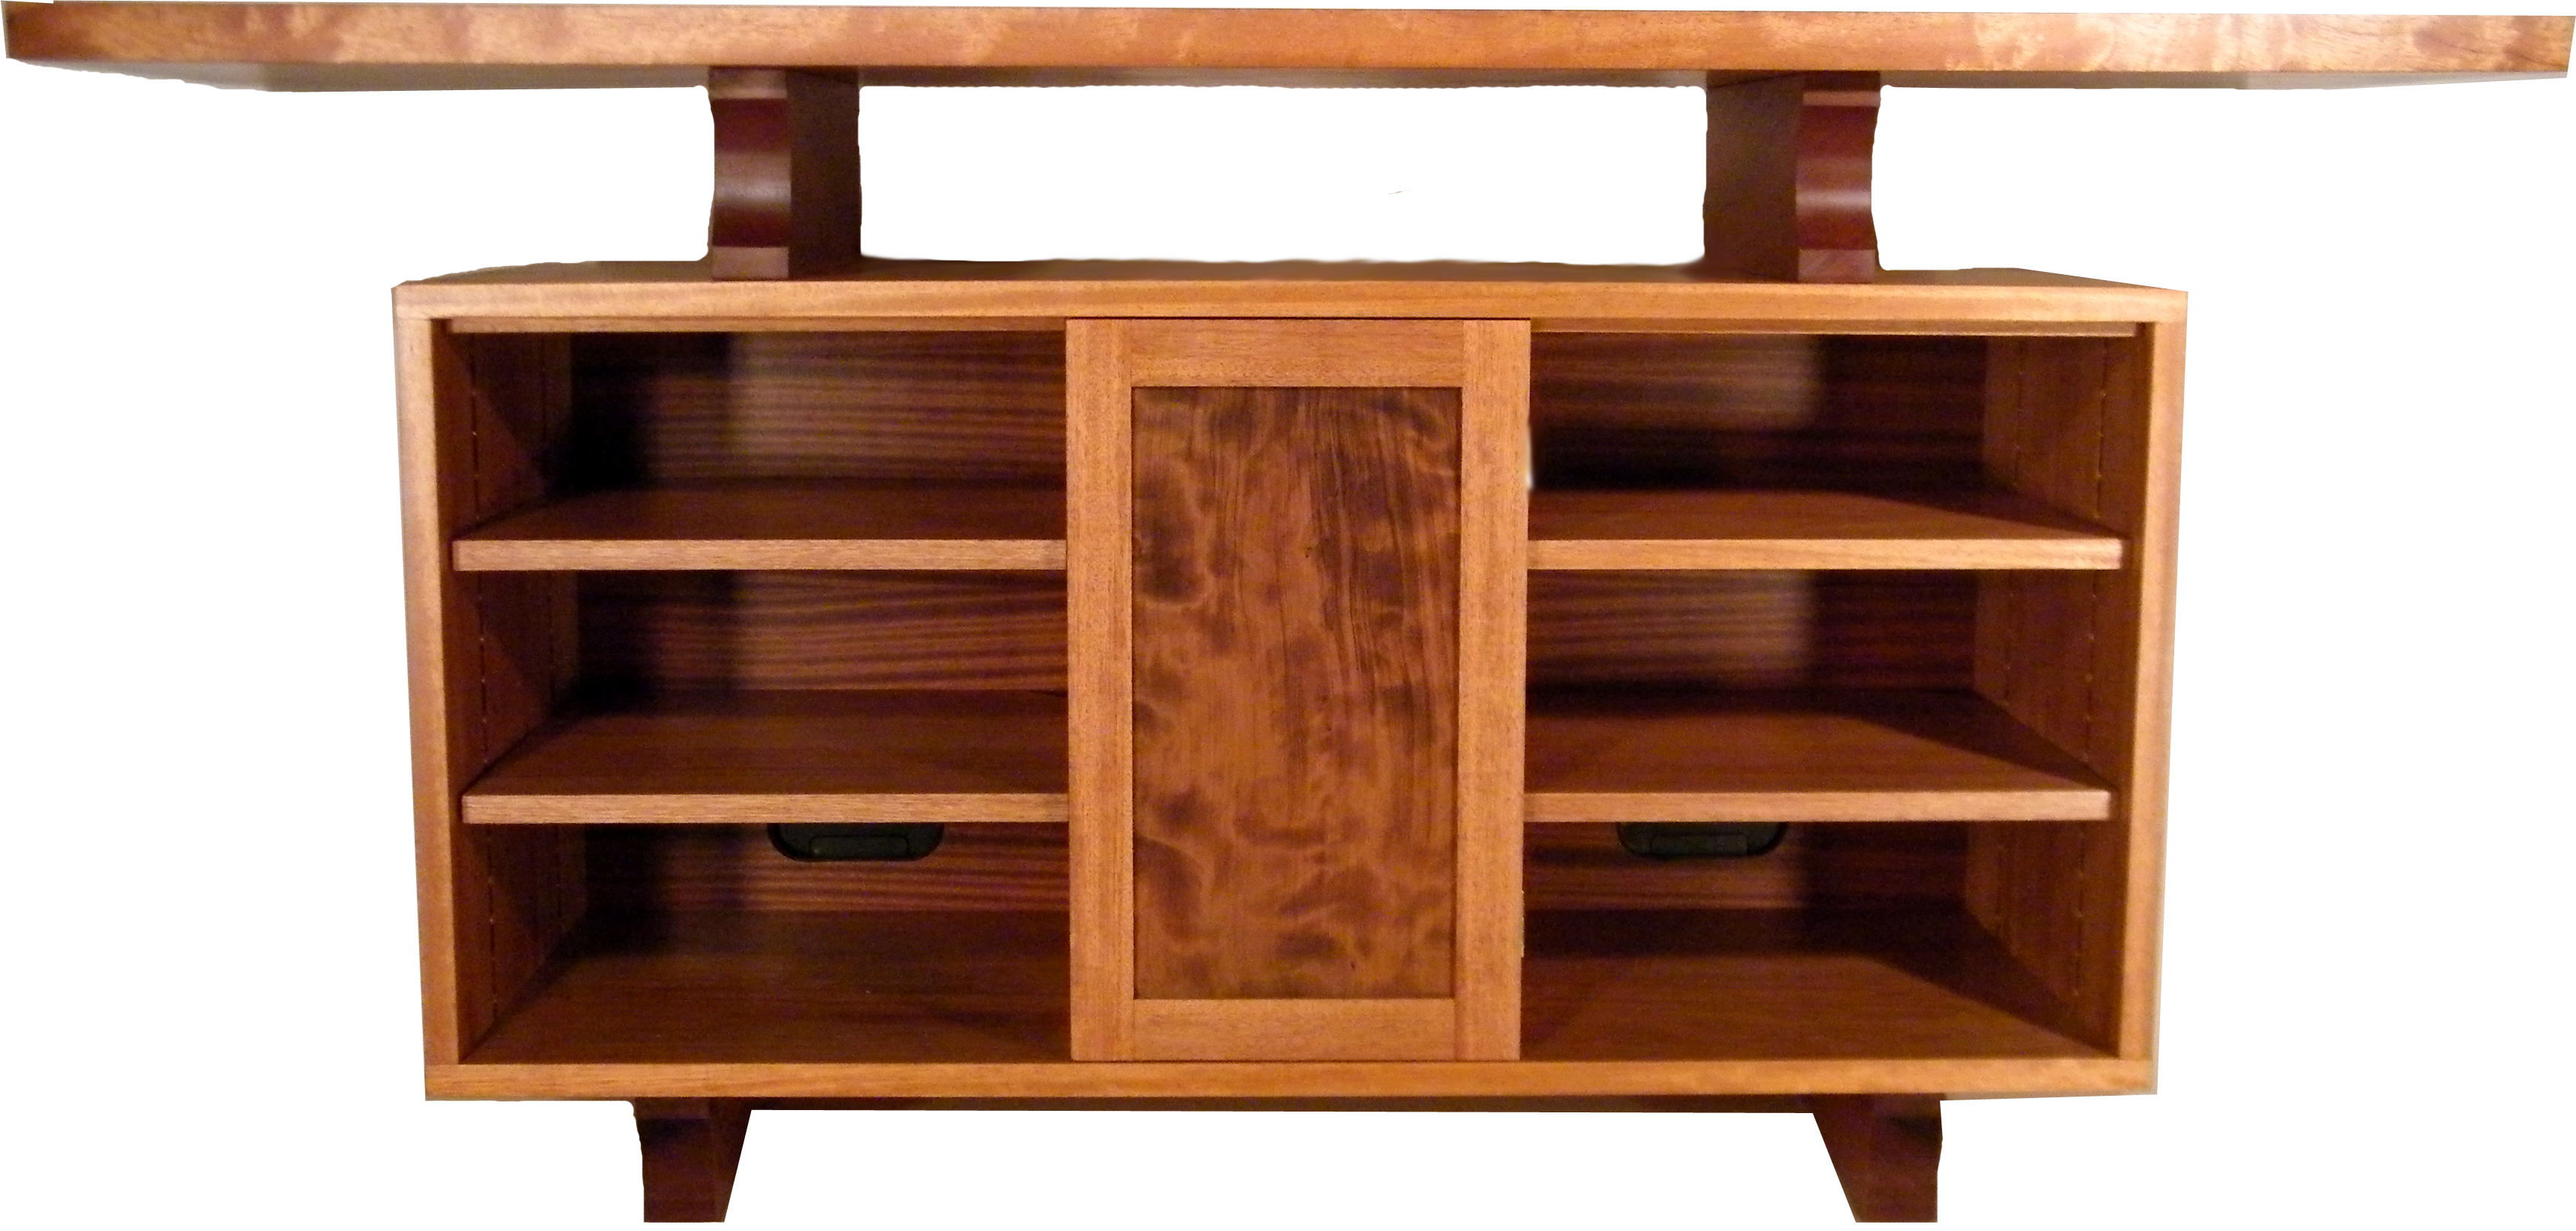 Custom Wood Furniture at the galleria : EntertainmentCenter from at-the-galleria.blogspot.com size 3430 x 1639 jpeg 2024kB